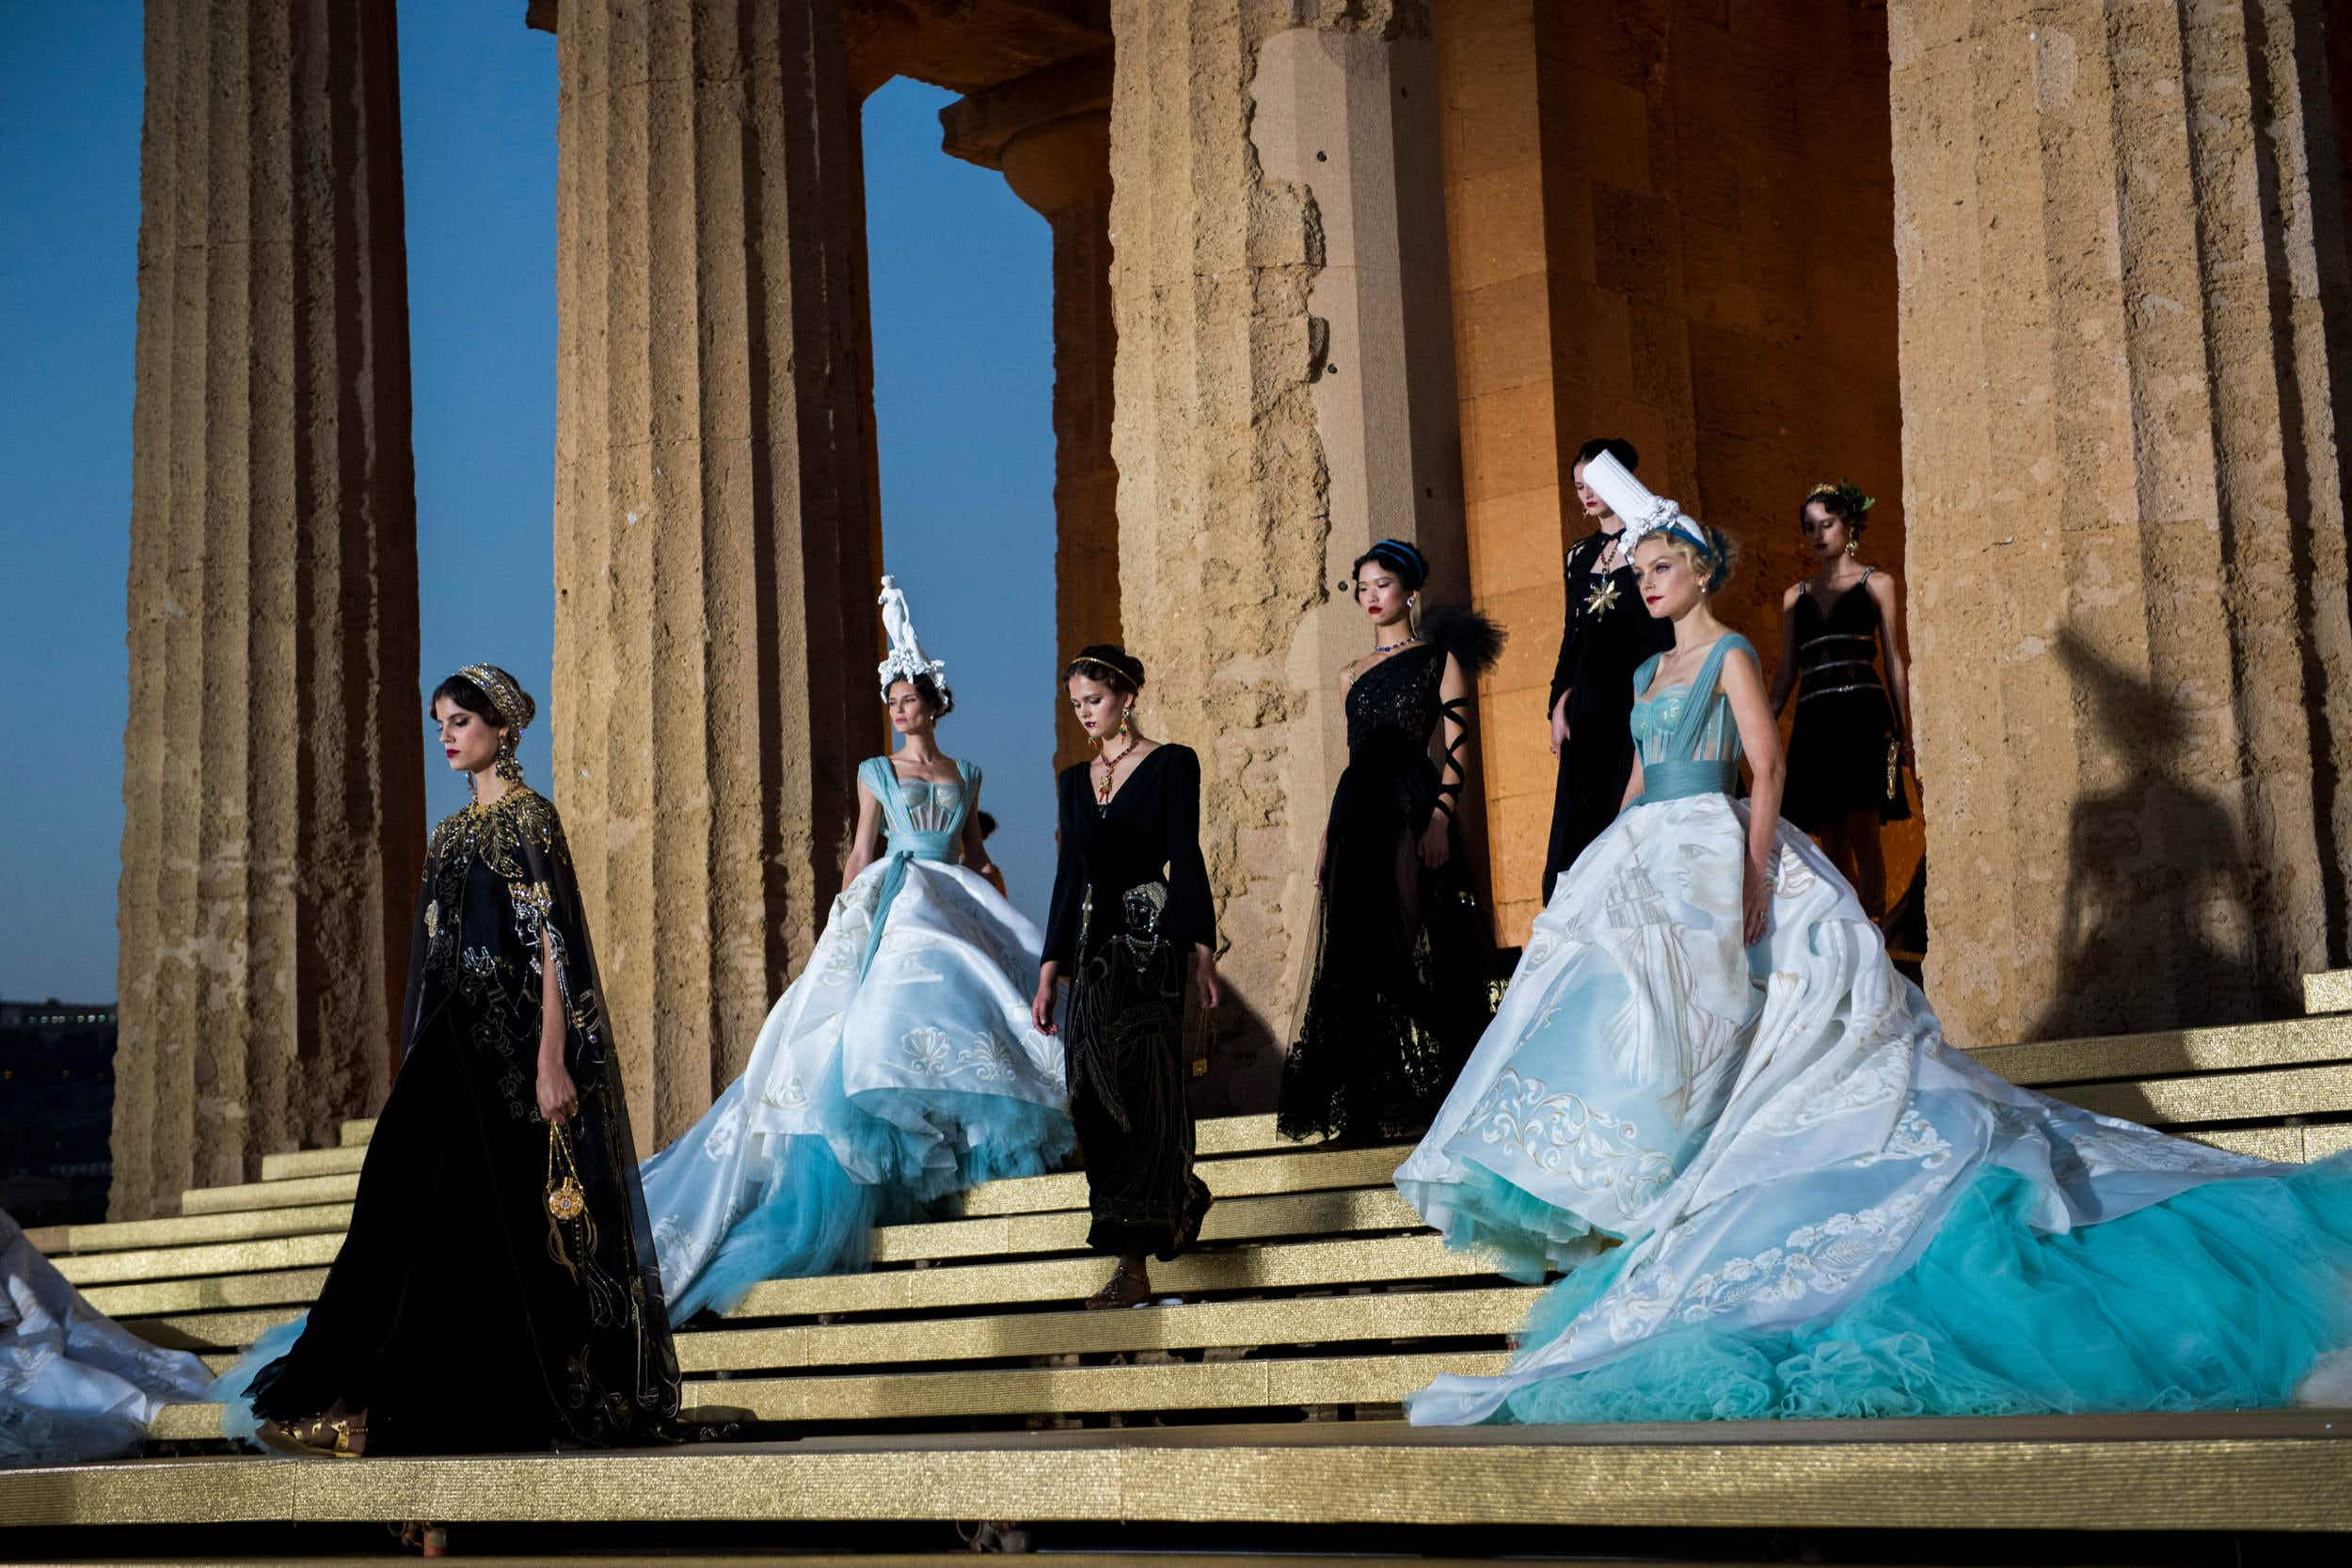 Walk through this ancient temple in Sicily thanks to Dolce & Gabbana